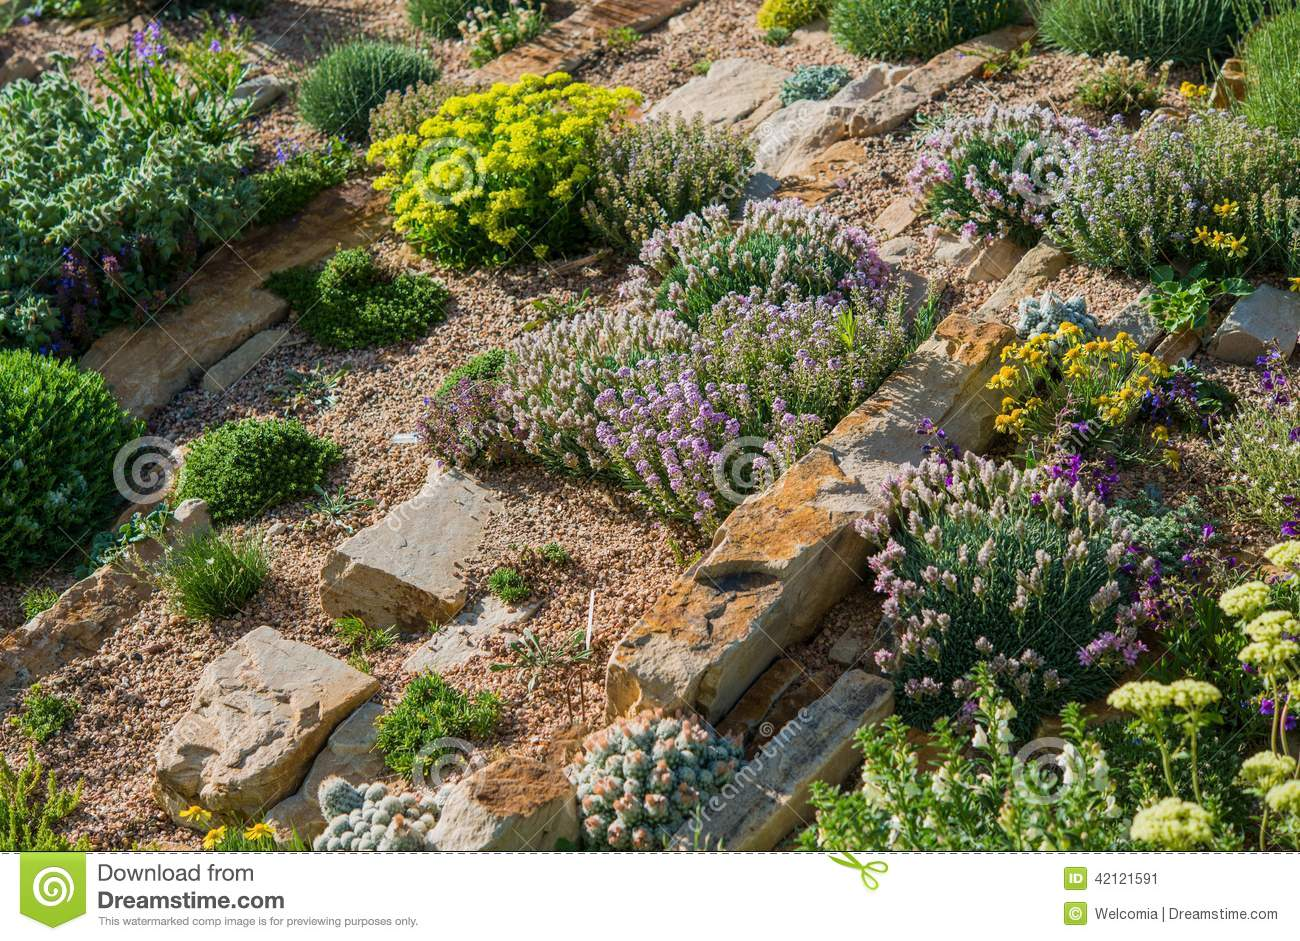 Jardin de jardin de rocaille photo stock image 42121591 for Jardin rocaille